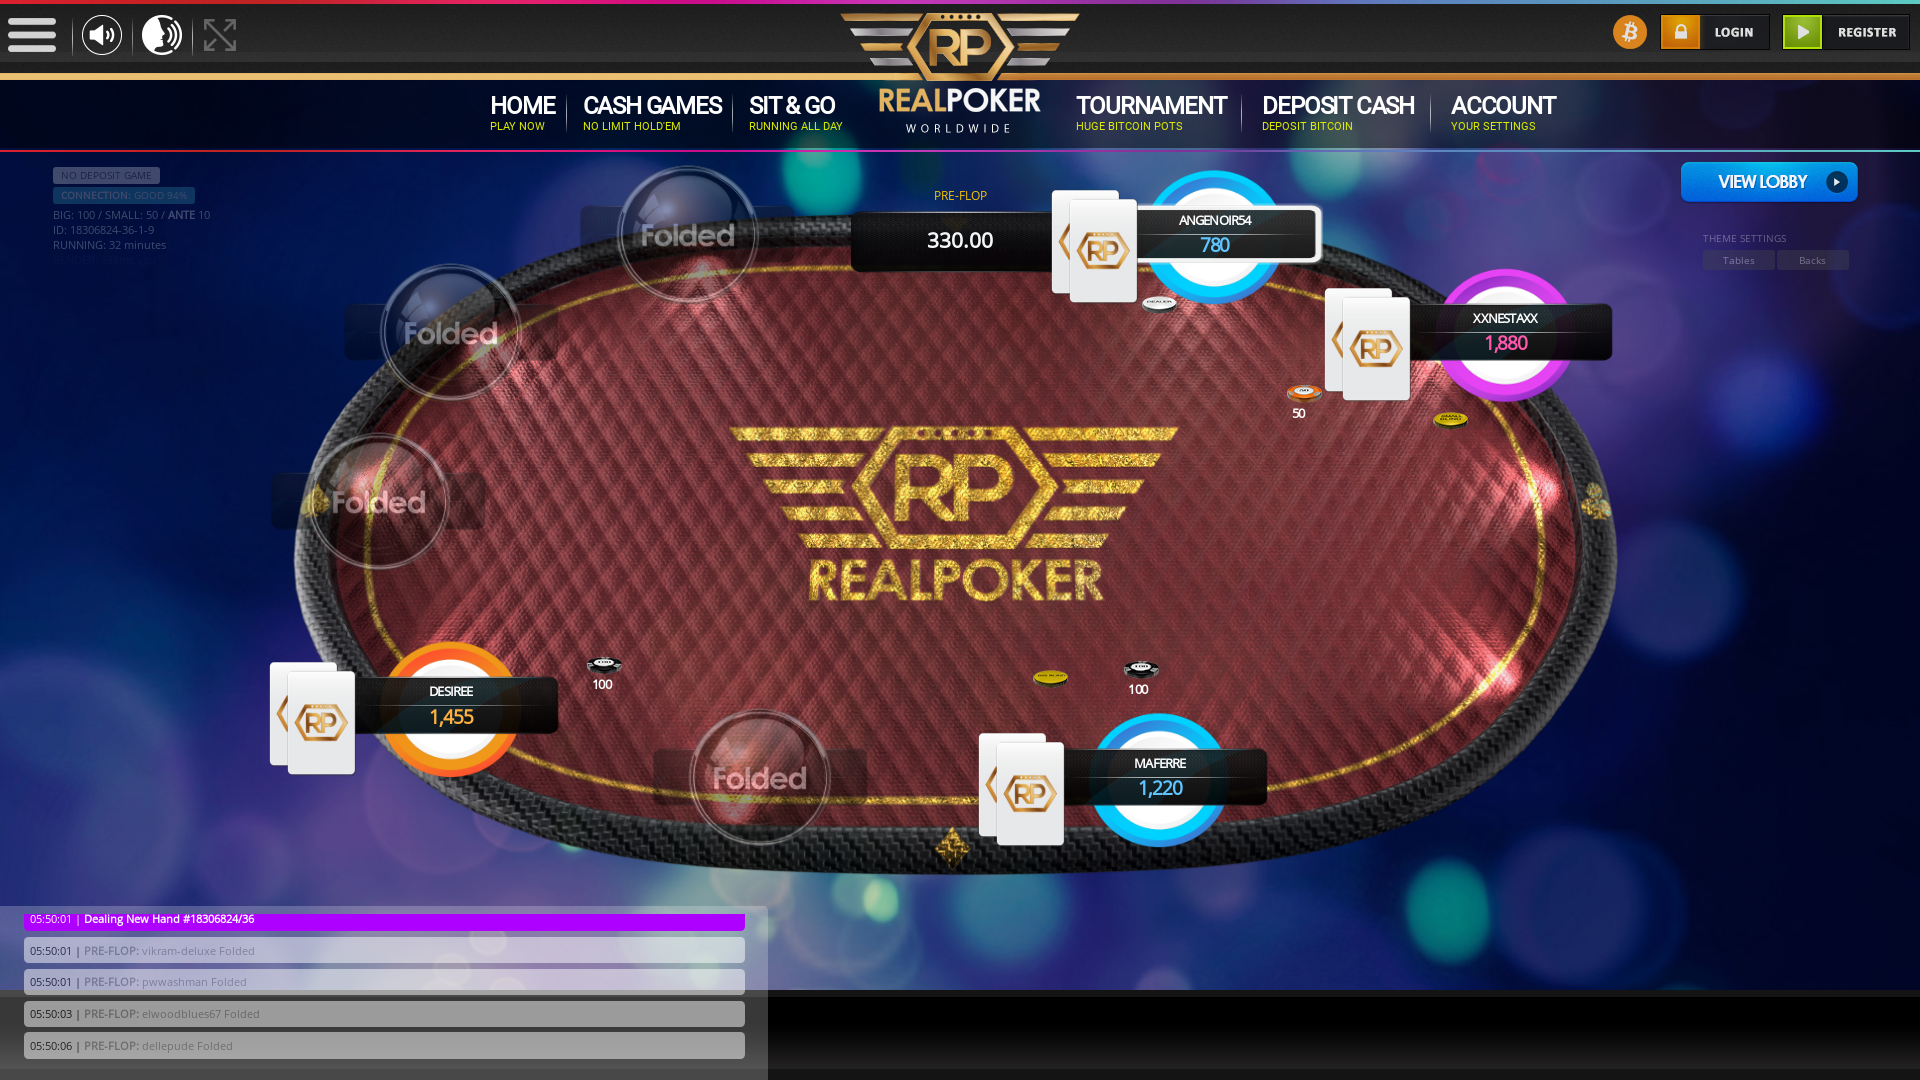 10 player texas holdem table at real poker with the table id 18306824